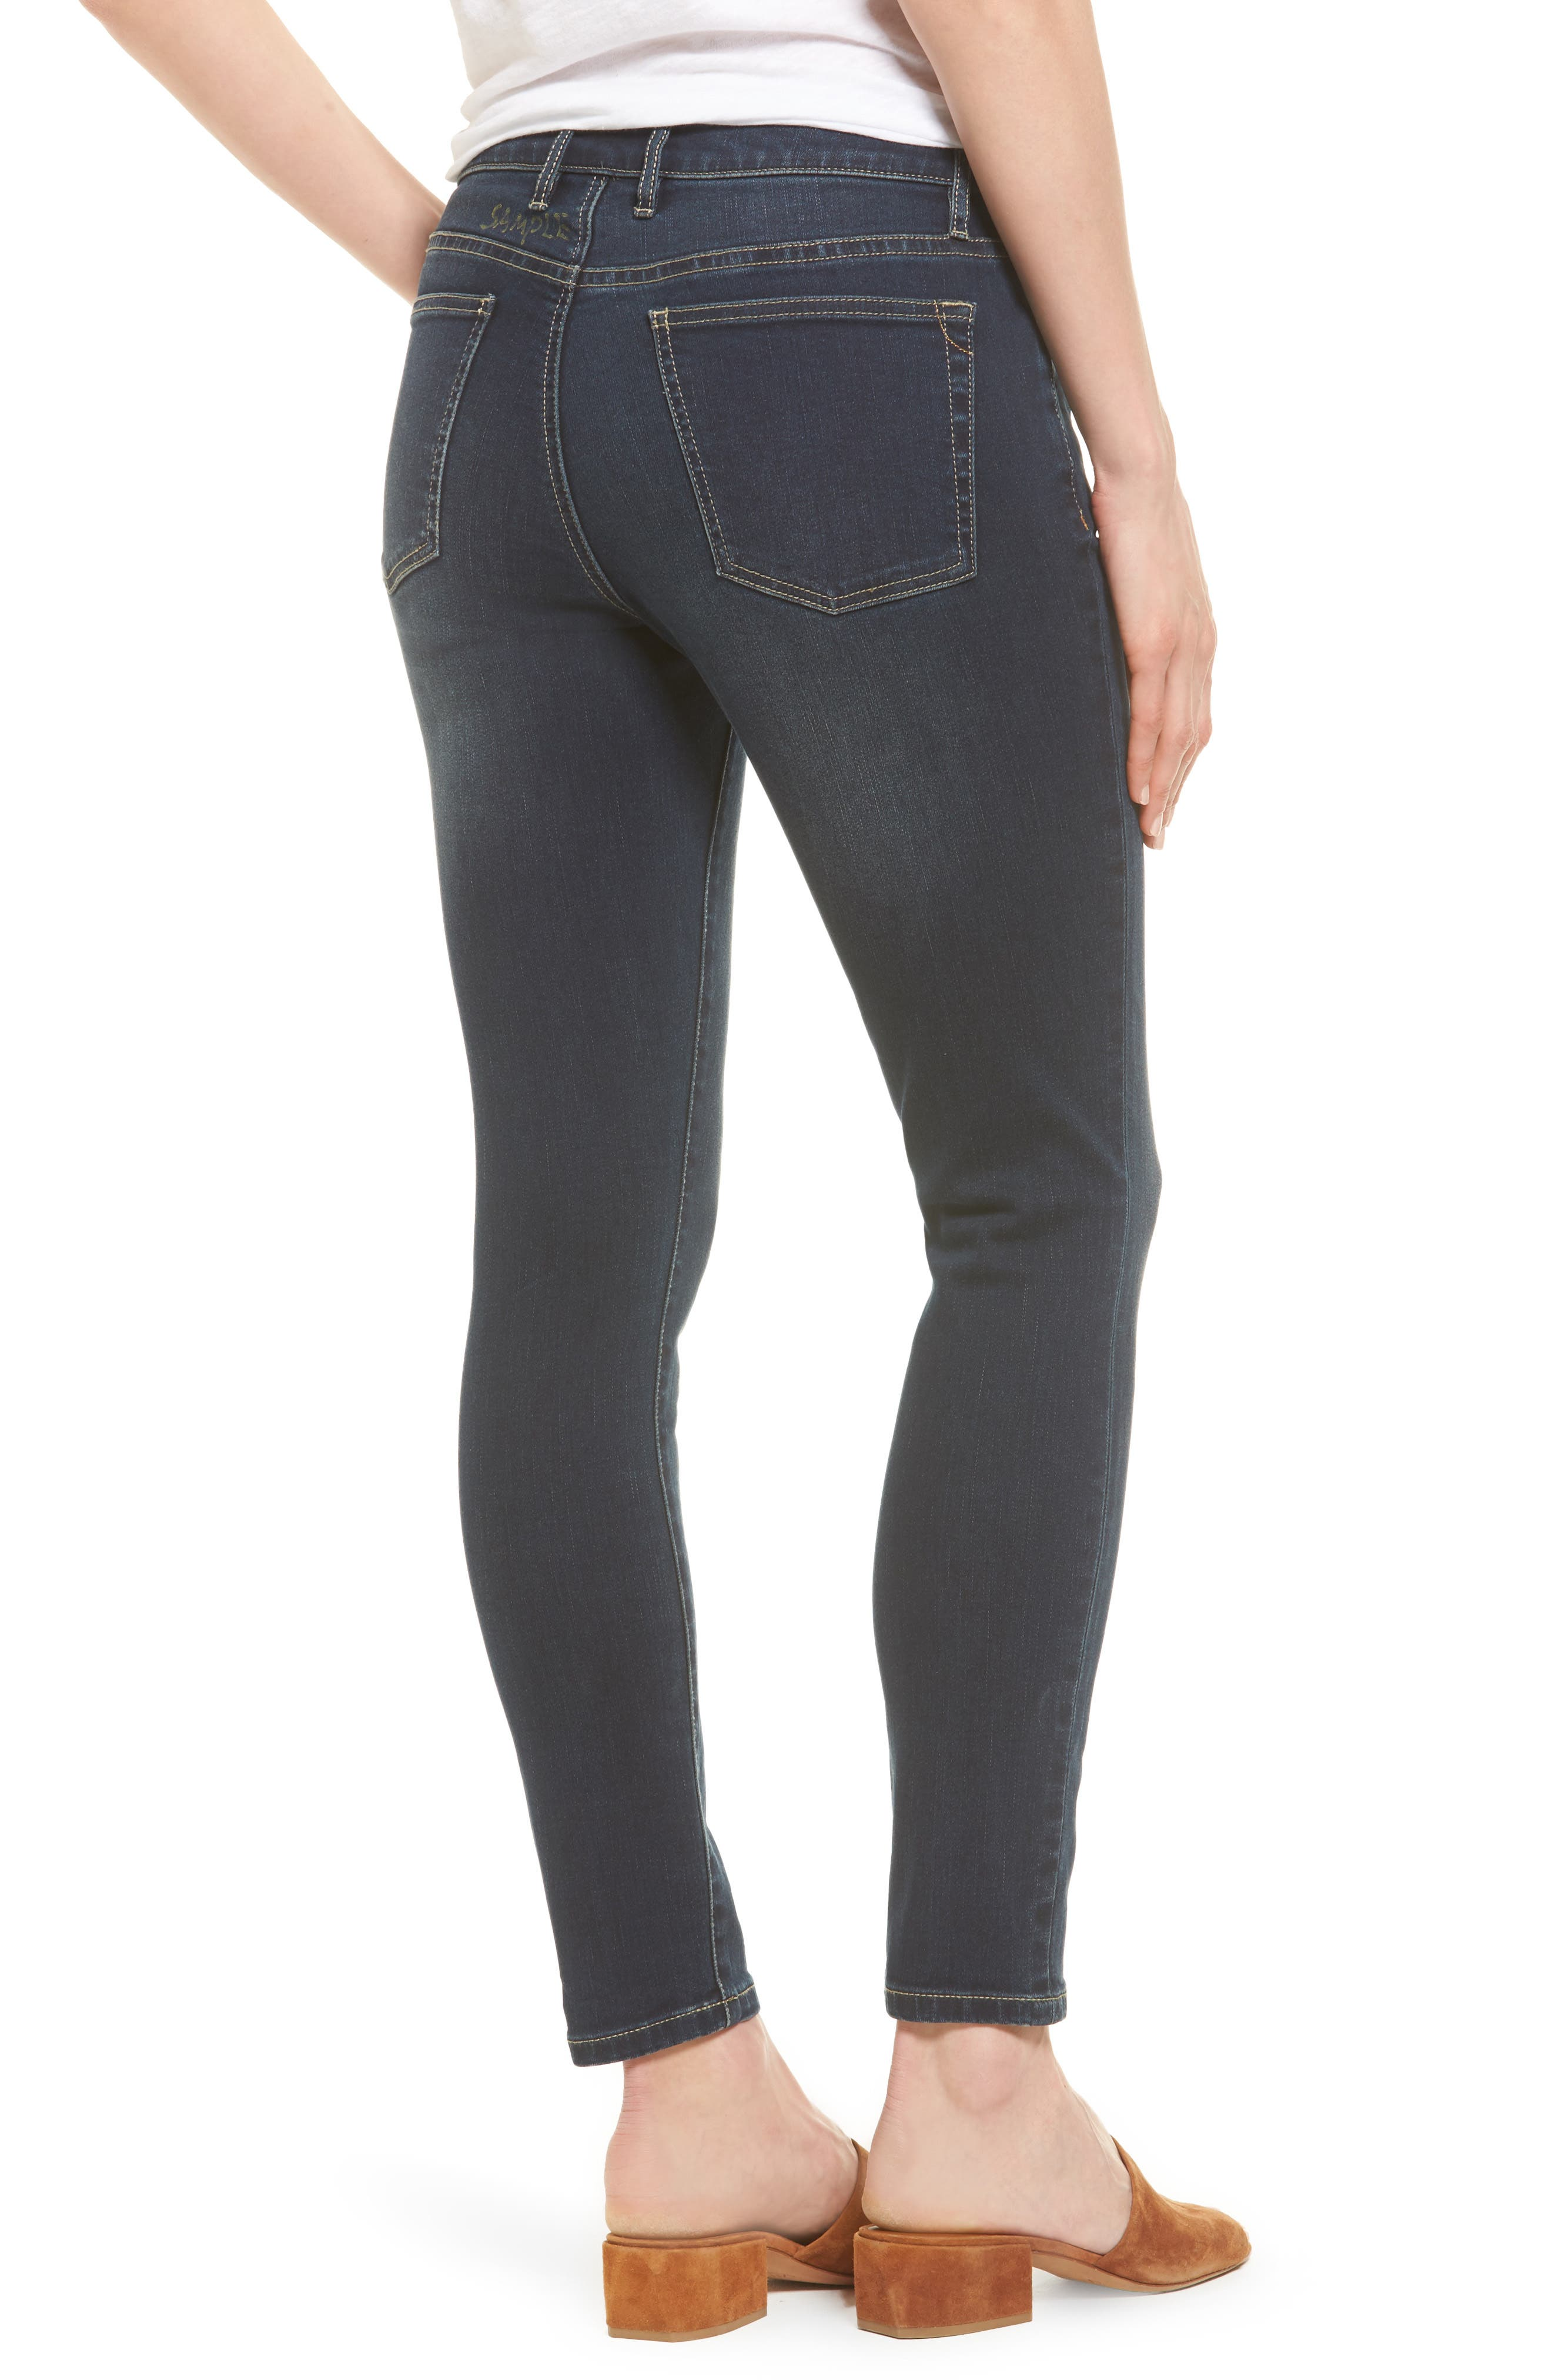 TOMMY BAHAMA, Tema Stretch Skinny Jeans, Alternate thumbnail 2, color, DARK OCEAN WASH